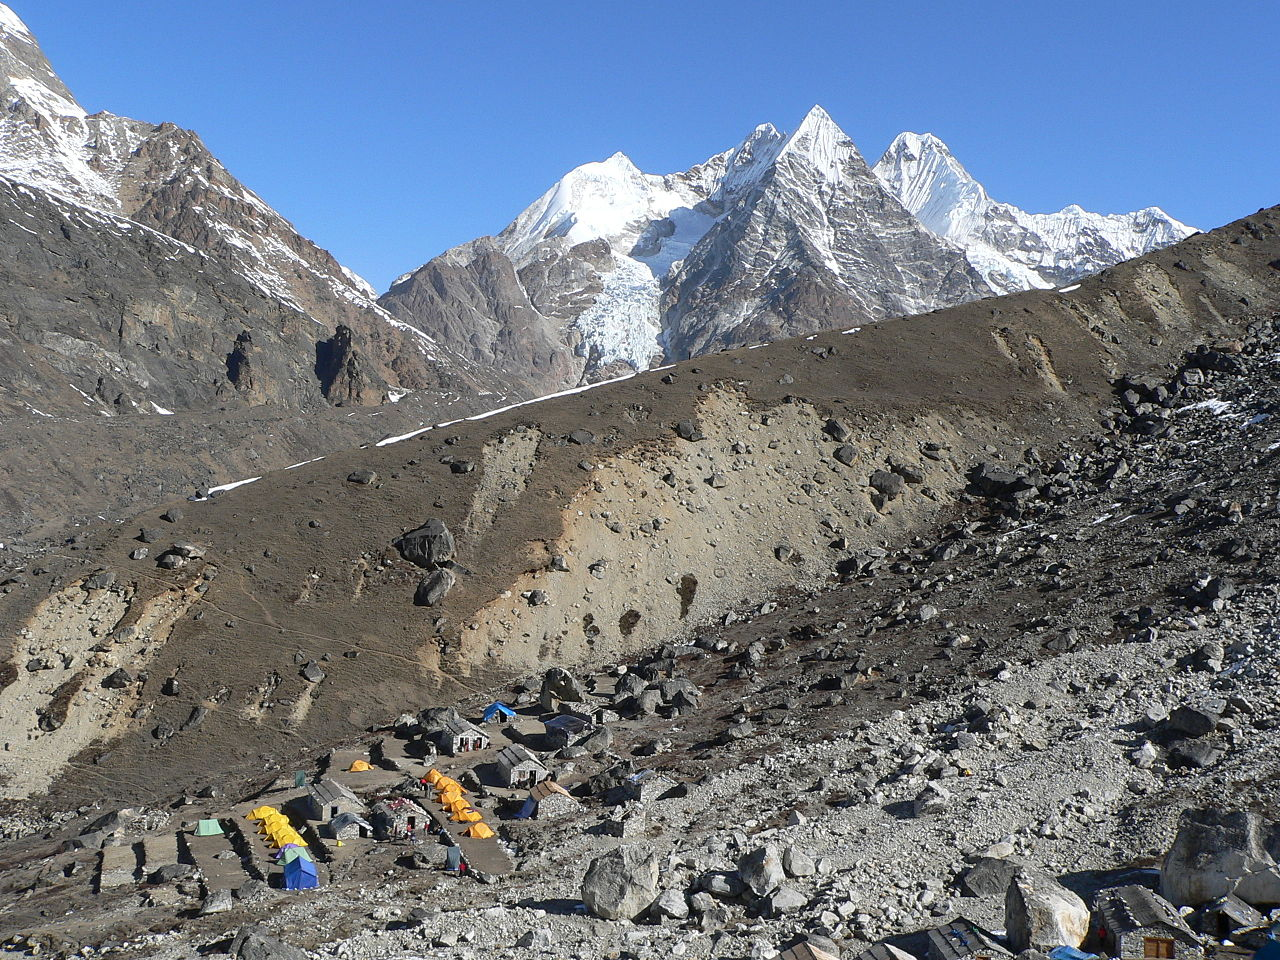 Mera_Peak_Base_Camp,_Nepal_2007.JPG